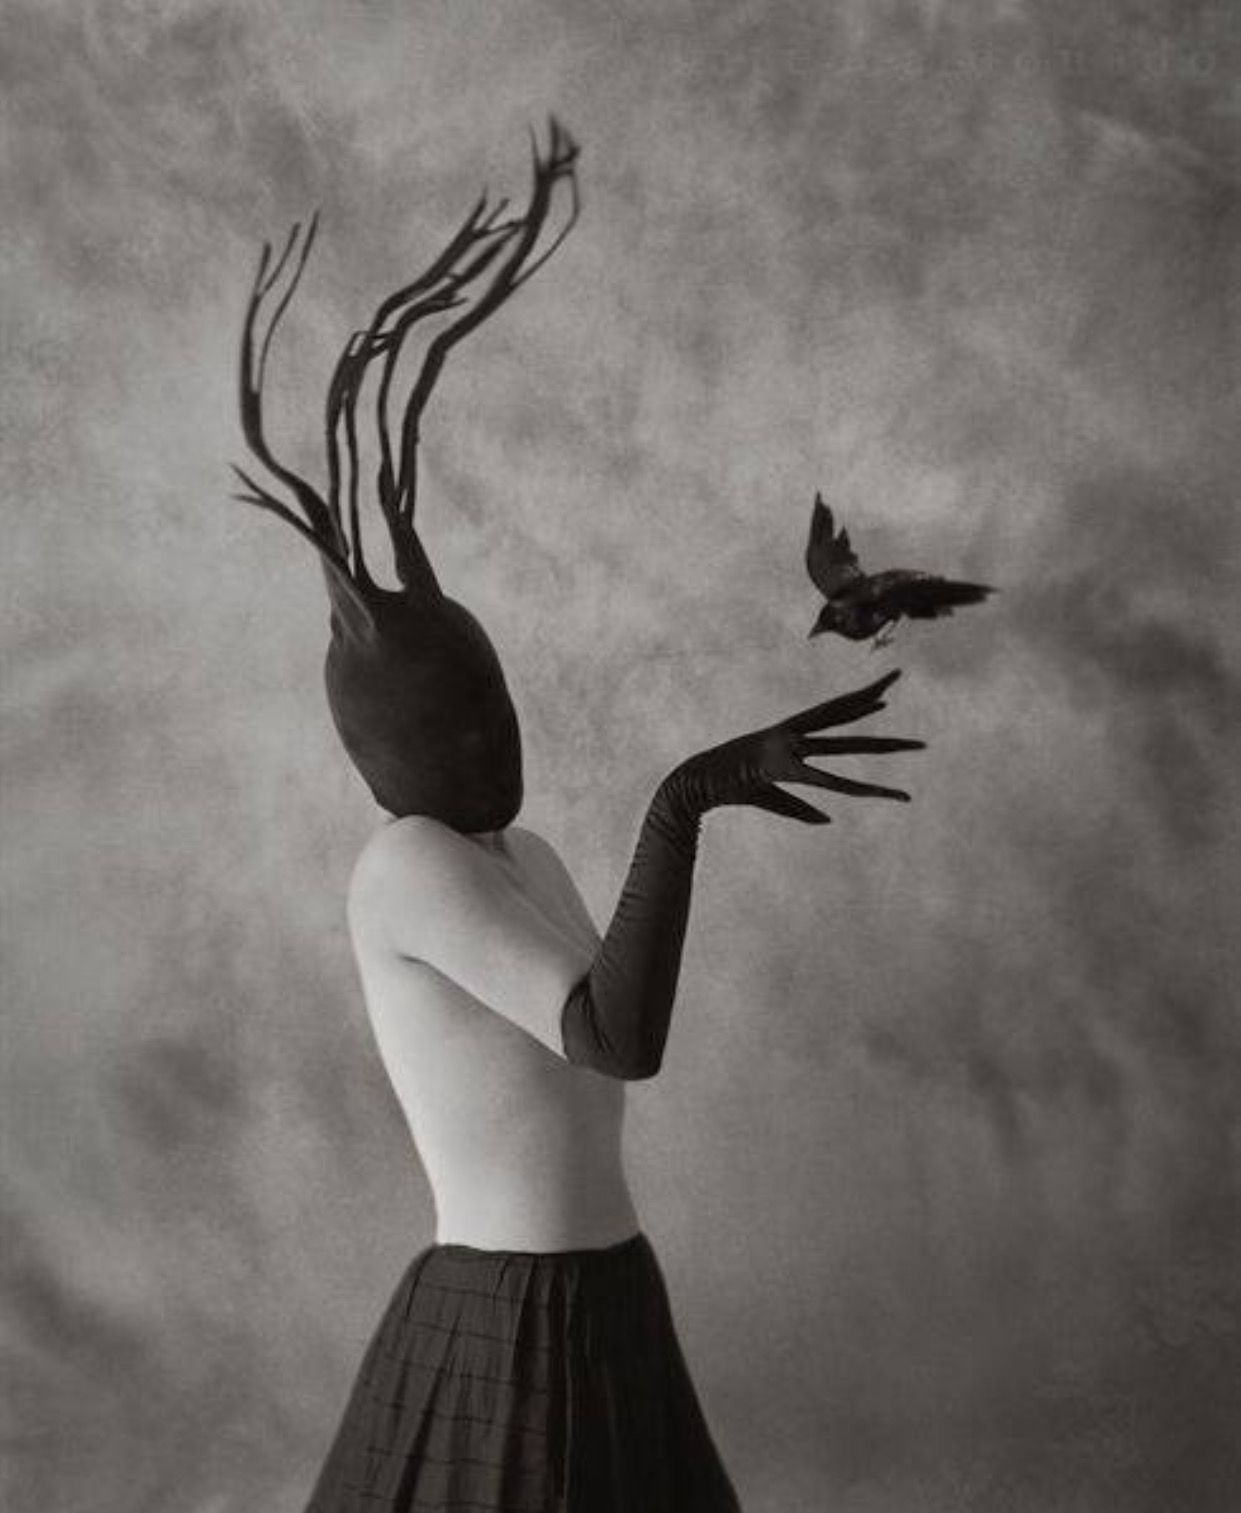 Pin By This Evil Bunny On Art Raven Photography Surrealism